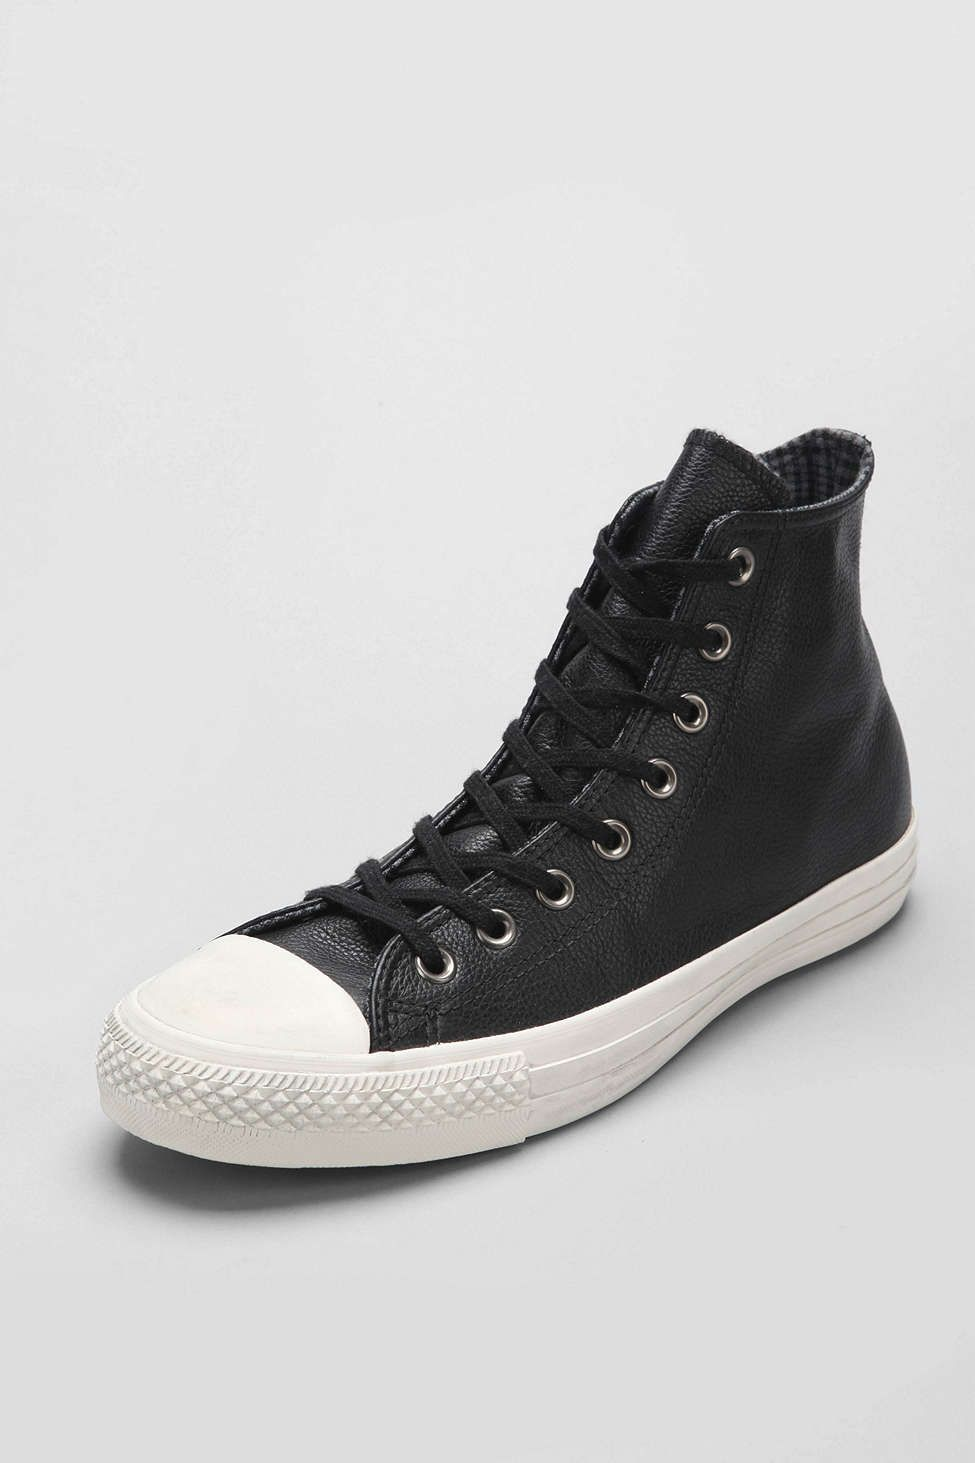 1c3087b8a53036 Converse X Uo Chuck Taylor All Star Leather High-Top Men S Sneaker in Black  for Men